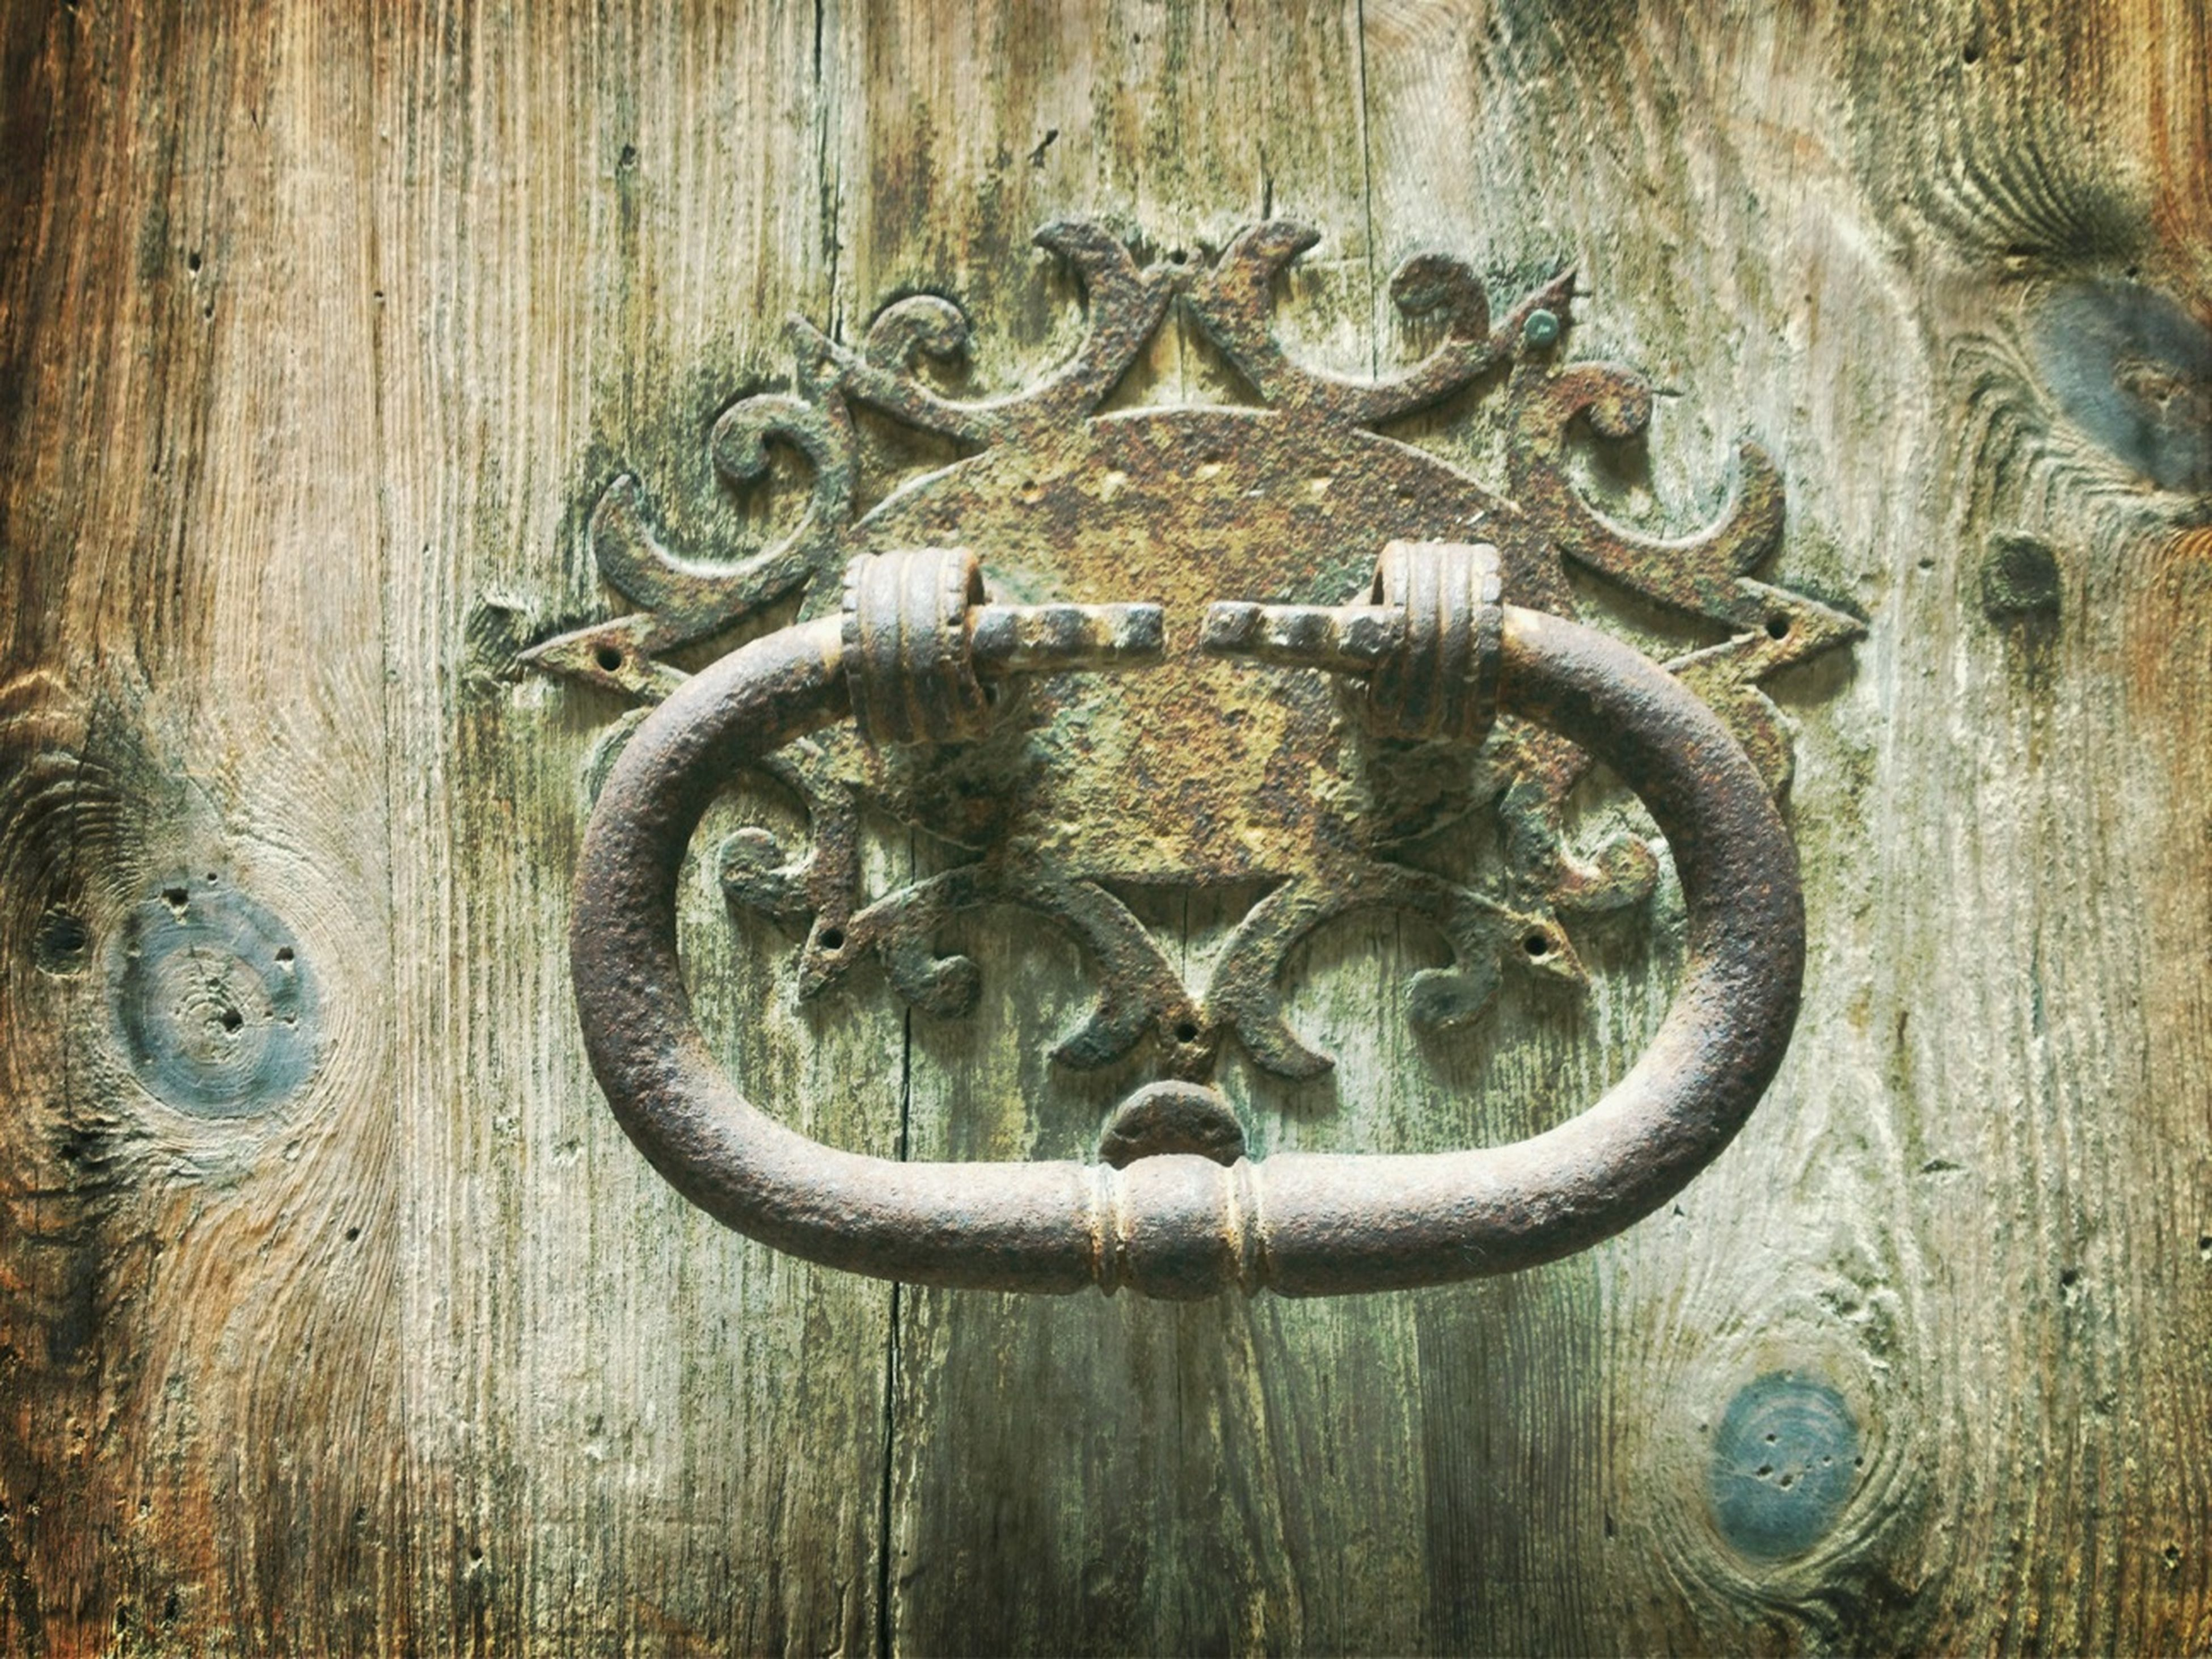 metal, wood - material, full frame, wooden, door, rusty, close-up, protection, security, metallic, safety, backgrounds, old, textured, pattern, wood, closed, lock, design, weathered